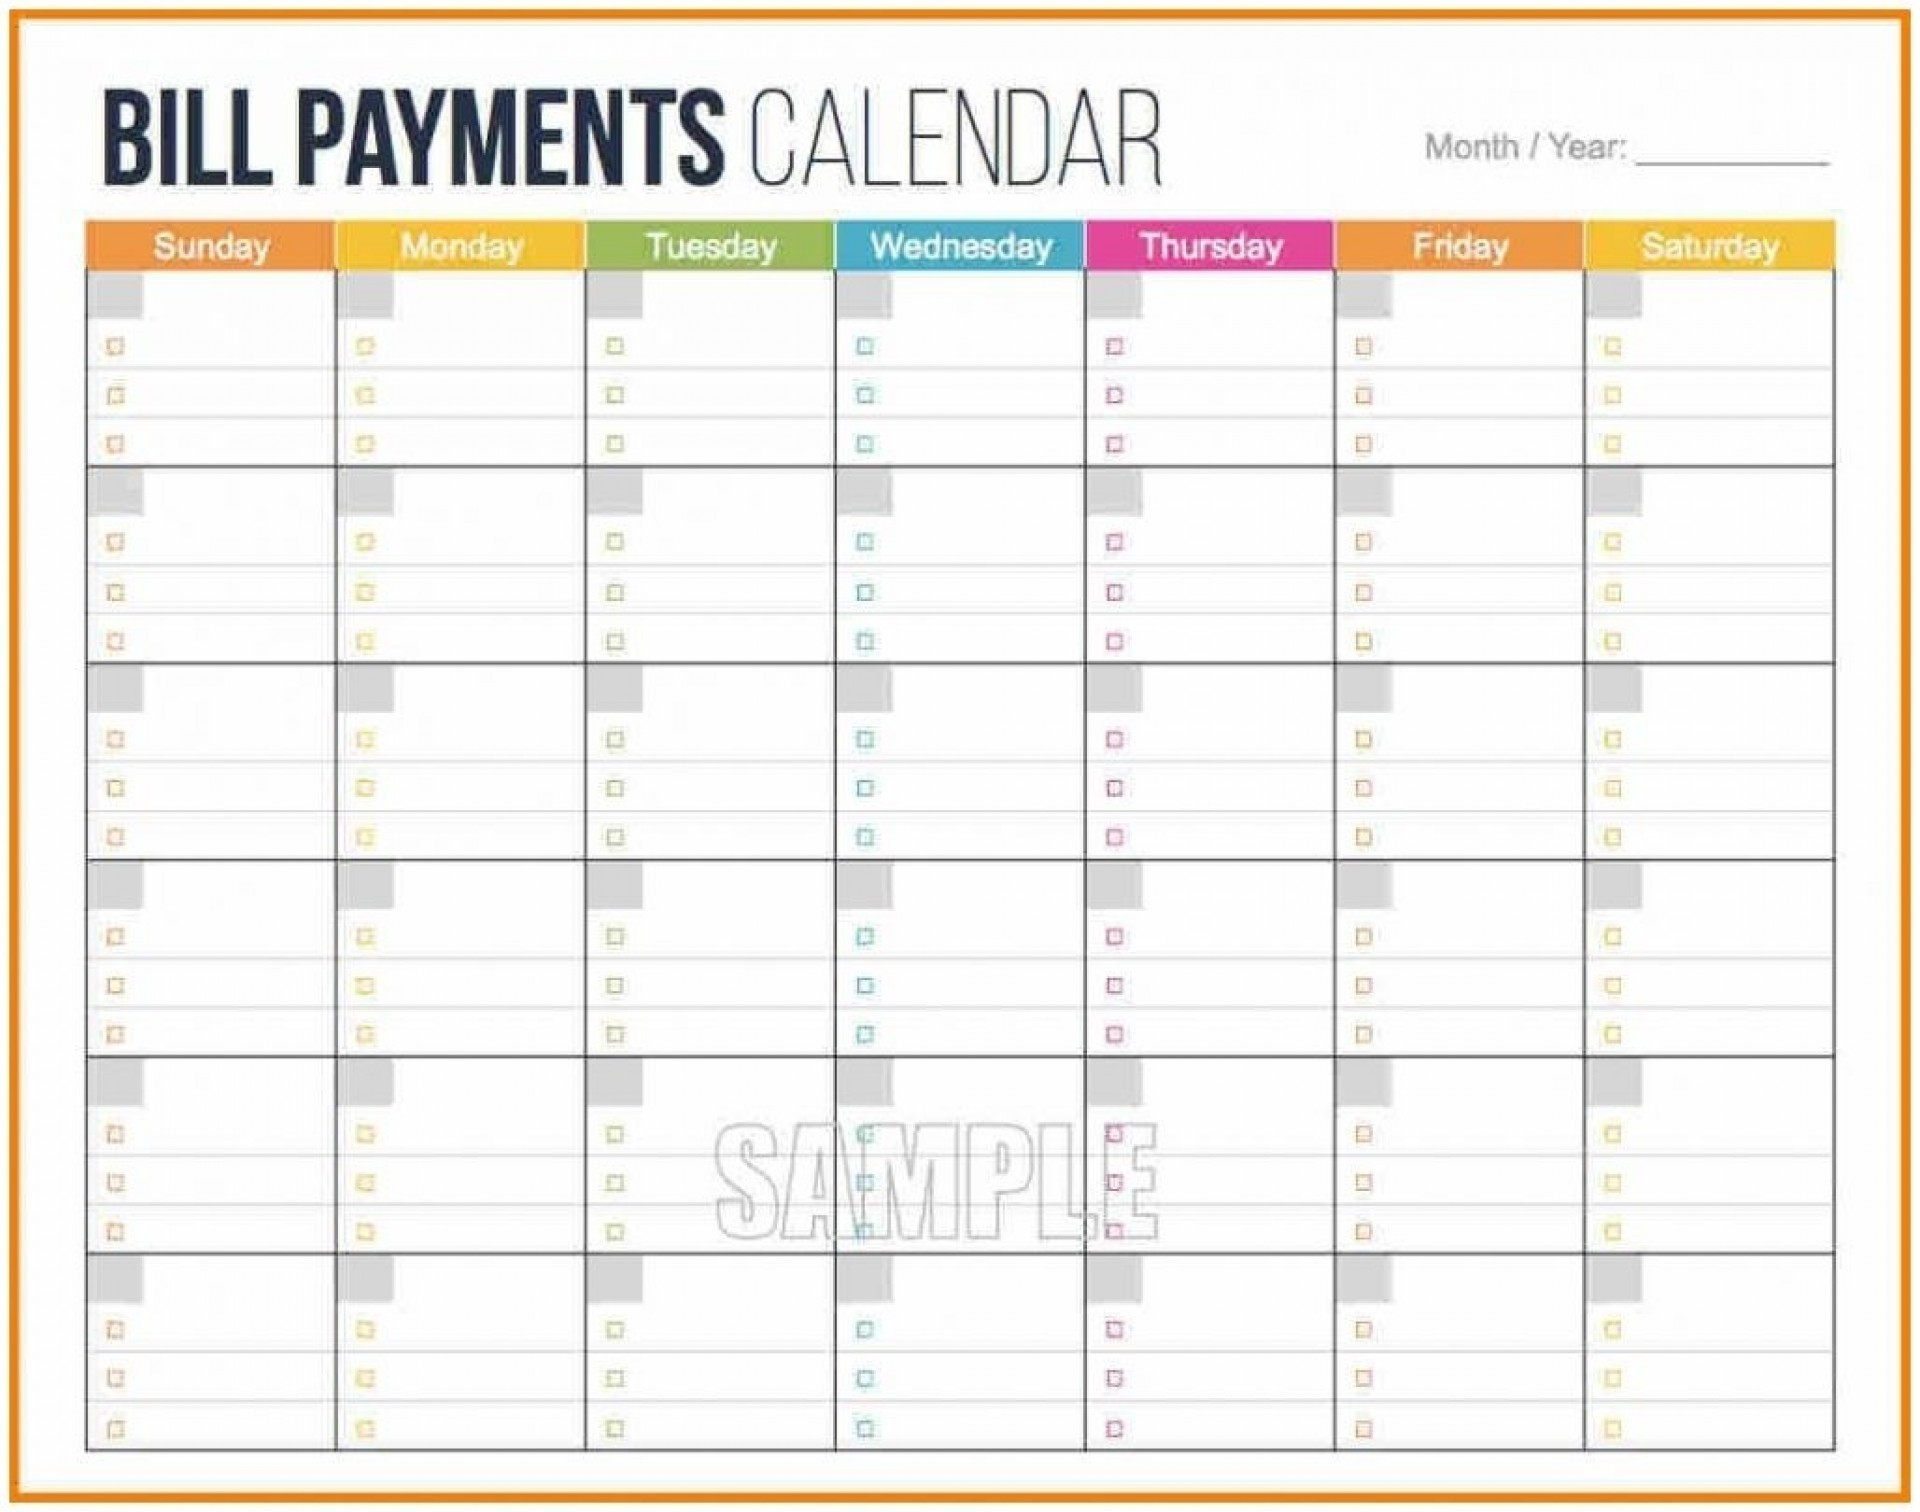 003 Bill Pay Calendar Template Ideas Paying Free Printable-Blank Calendar For Monthly Bills